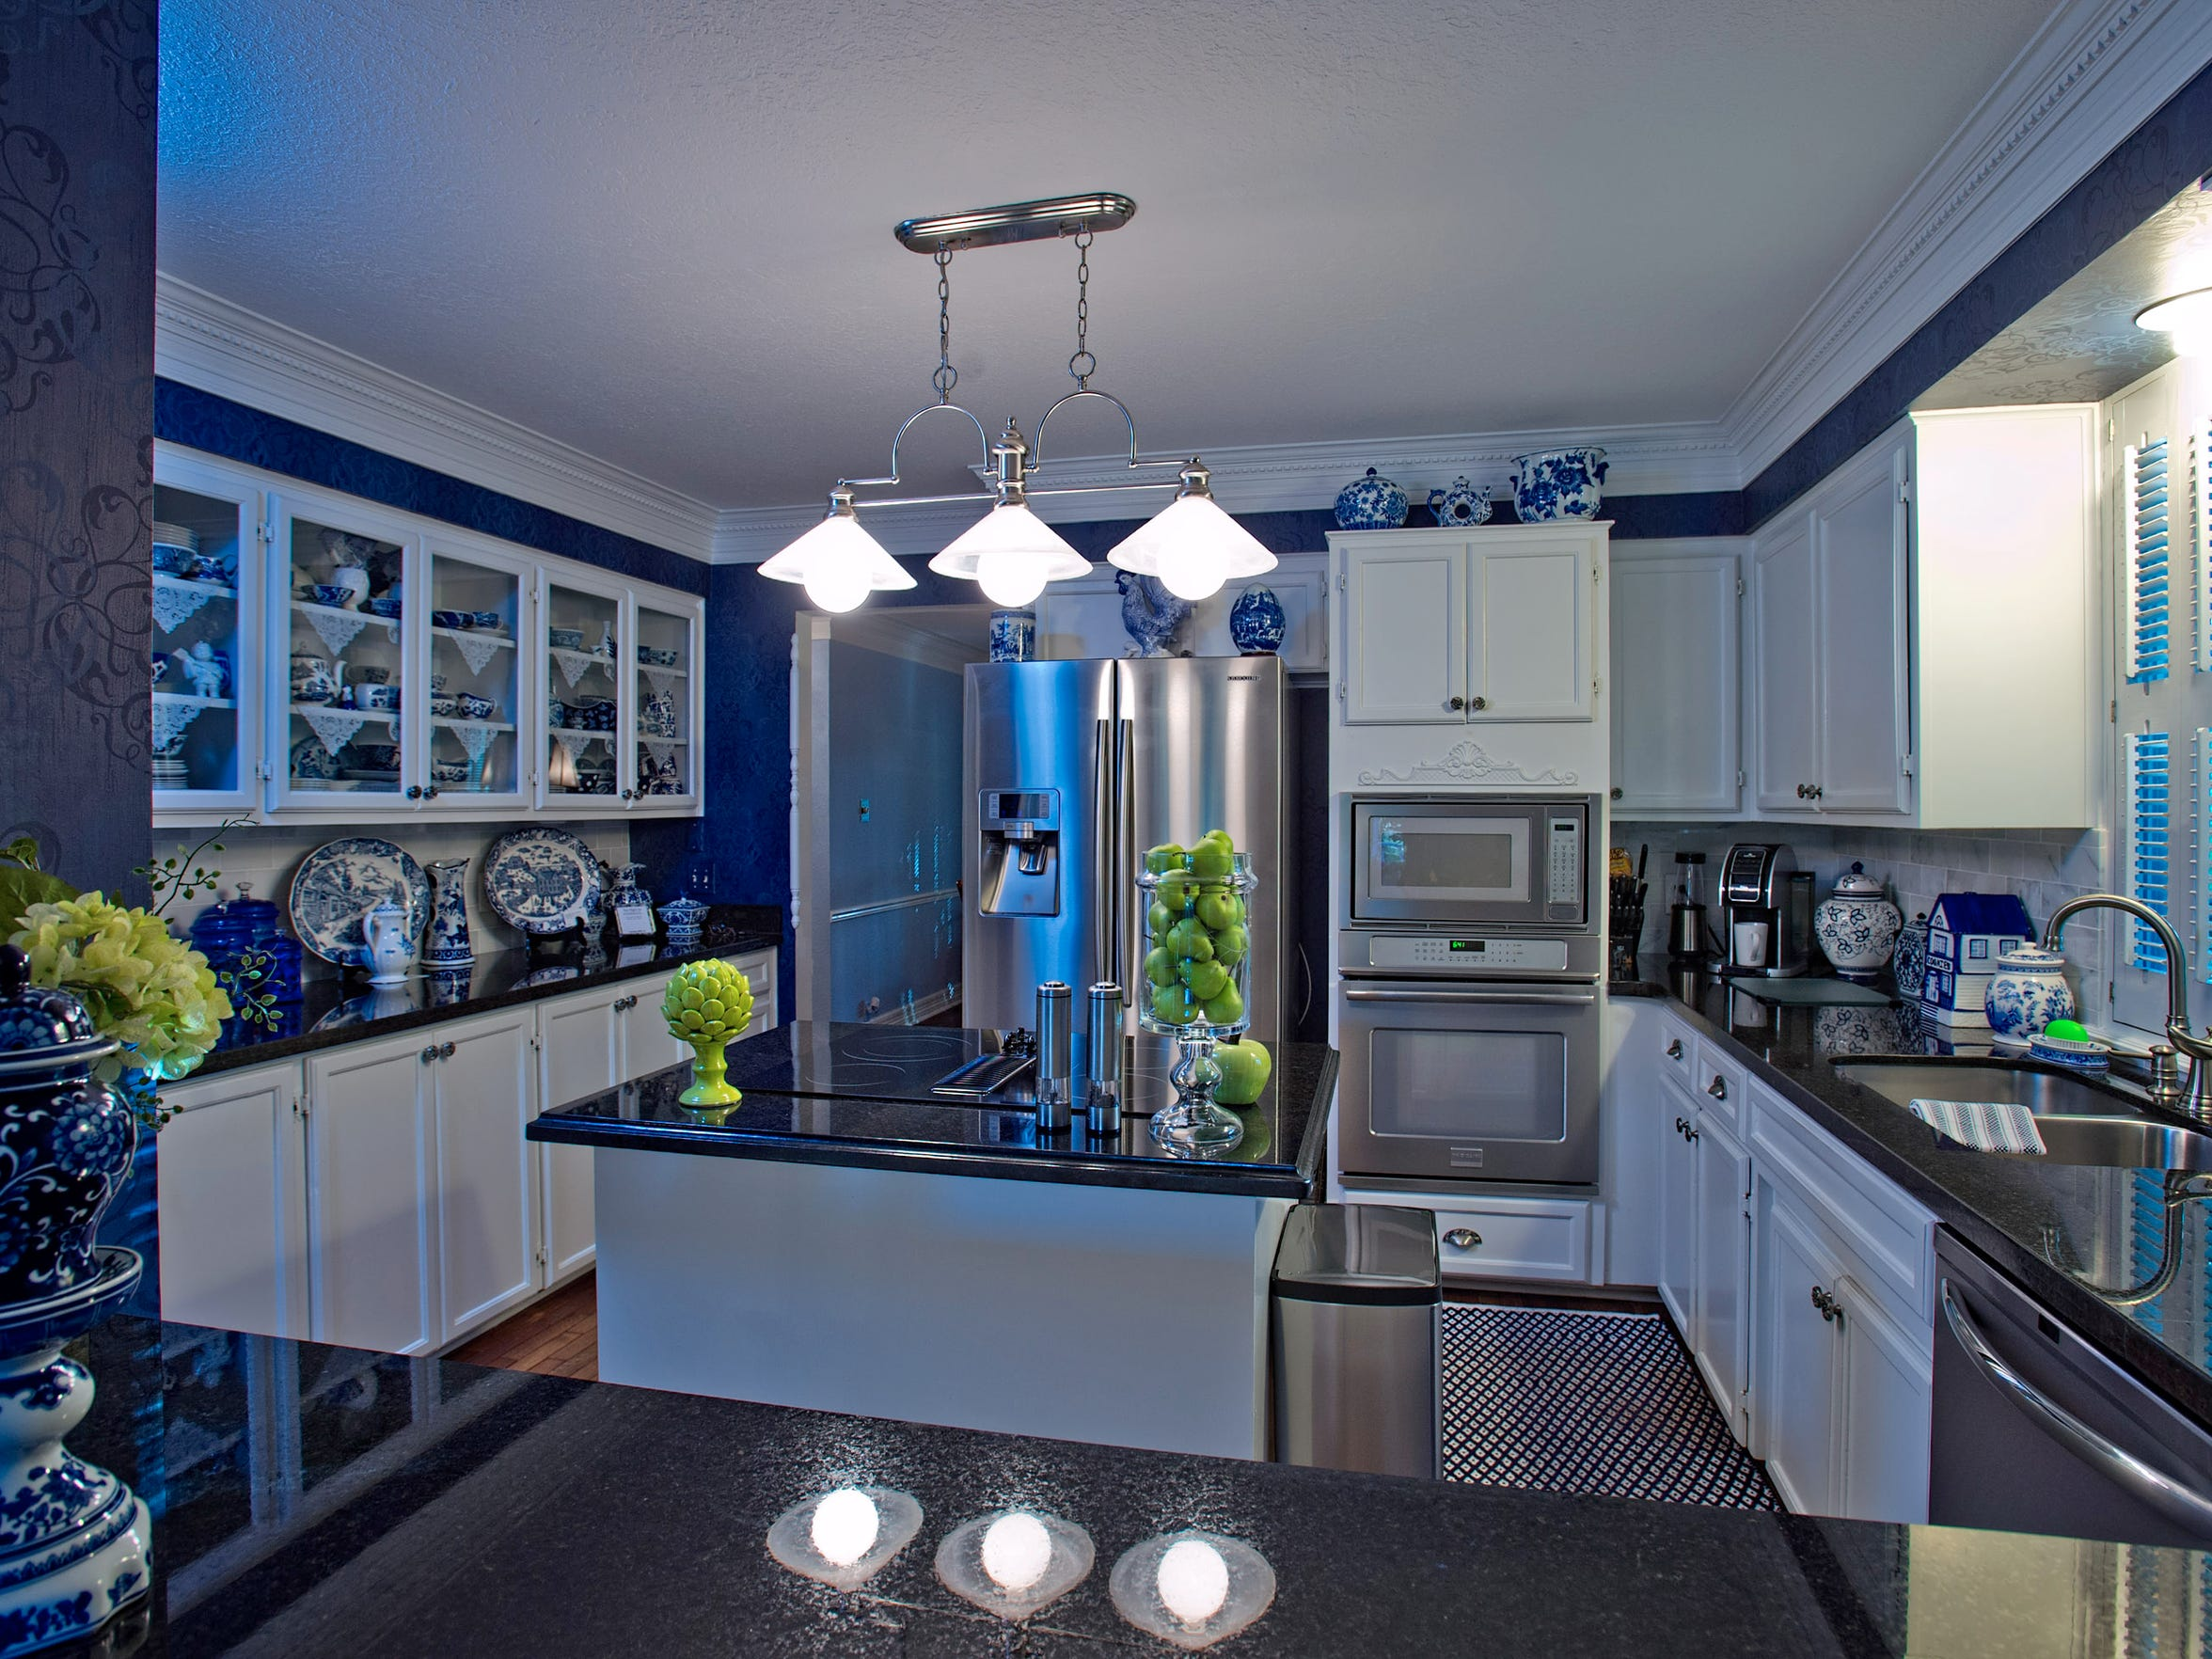 Black granite counters are perfect match for the stainless steel appliances and blue tones in the kitchen, featuring an island, breakfast bar  and plenty of built ins